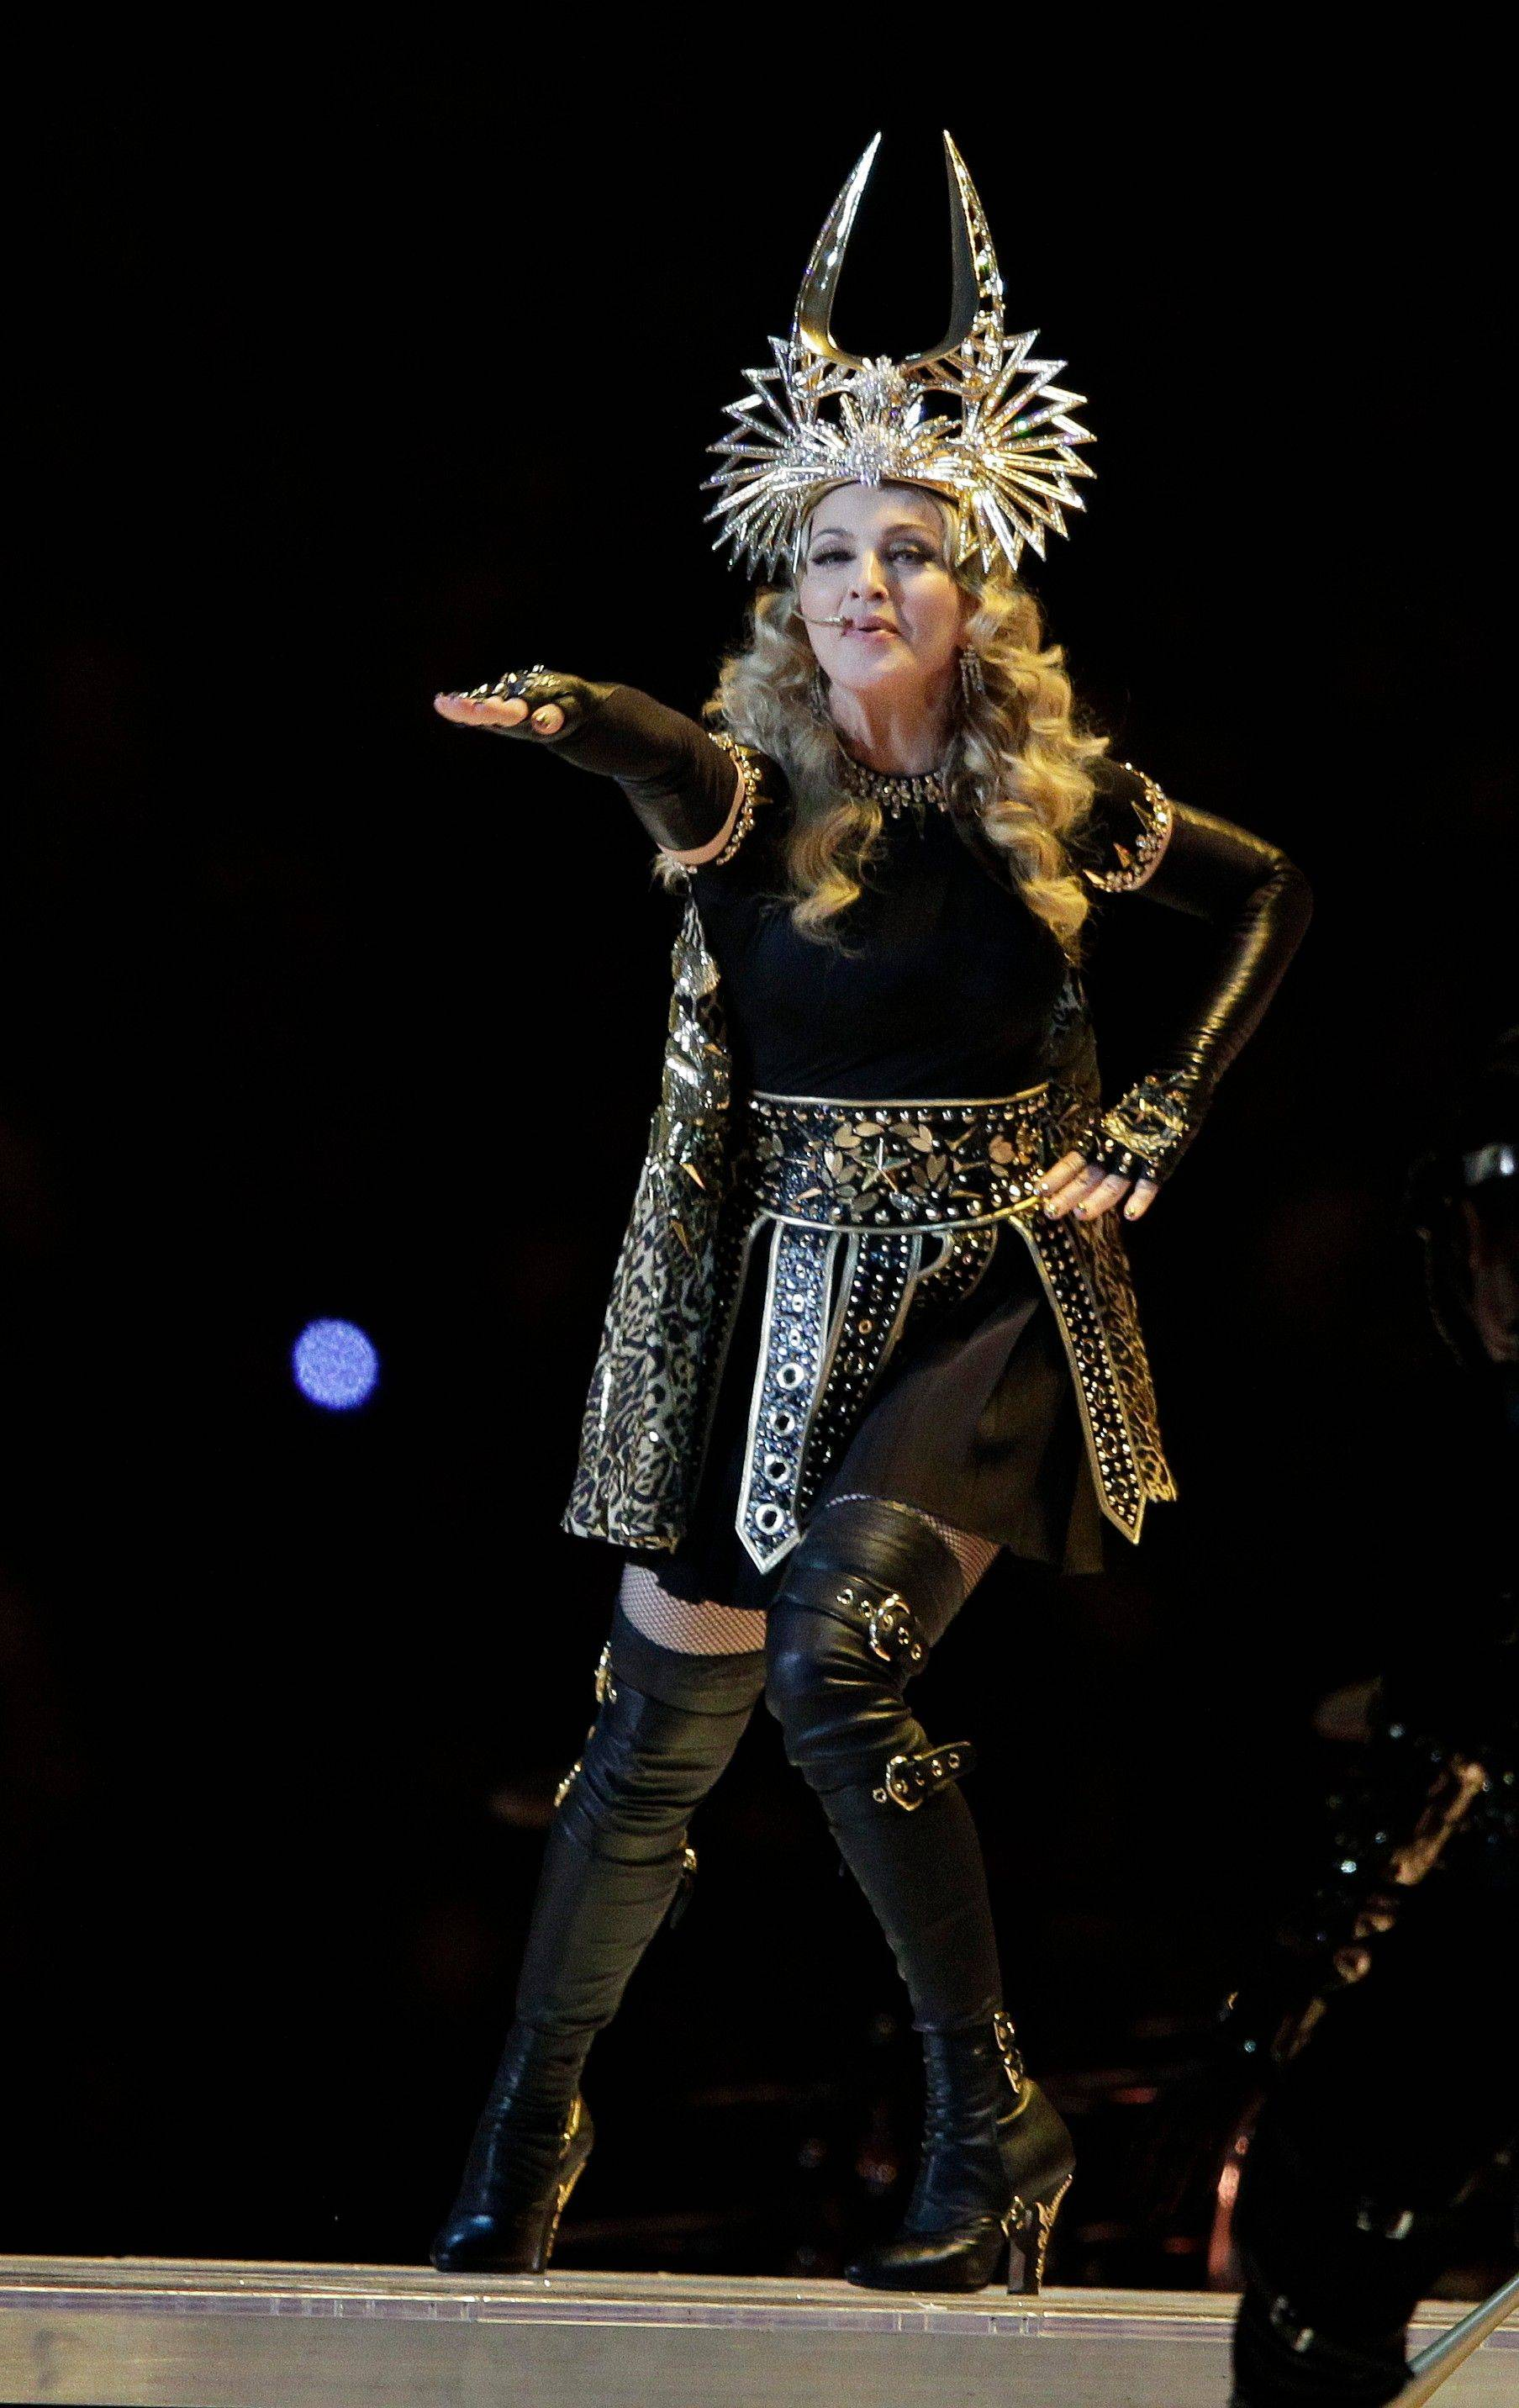 Madonna performs during halftime of the NFL Super Bowl XLVI football game between the New England Patriots and the New York Giants Sunday in Indianapolis.